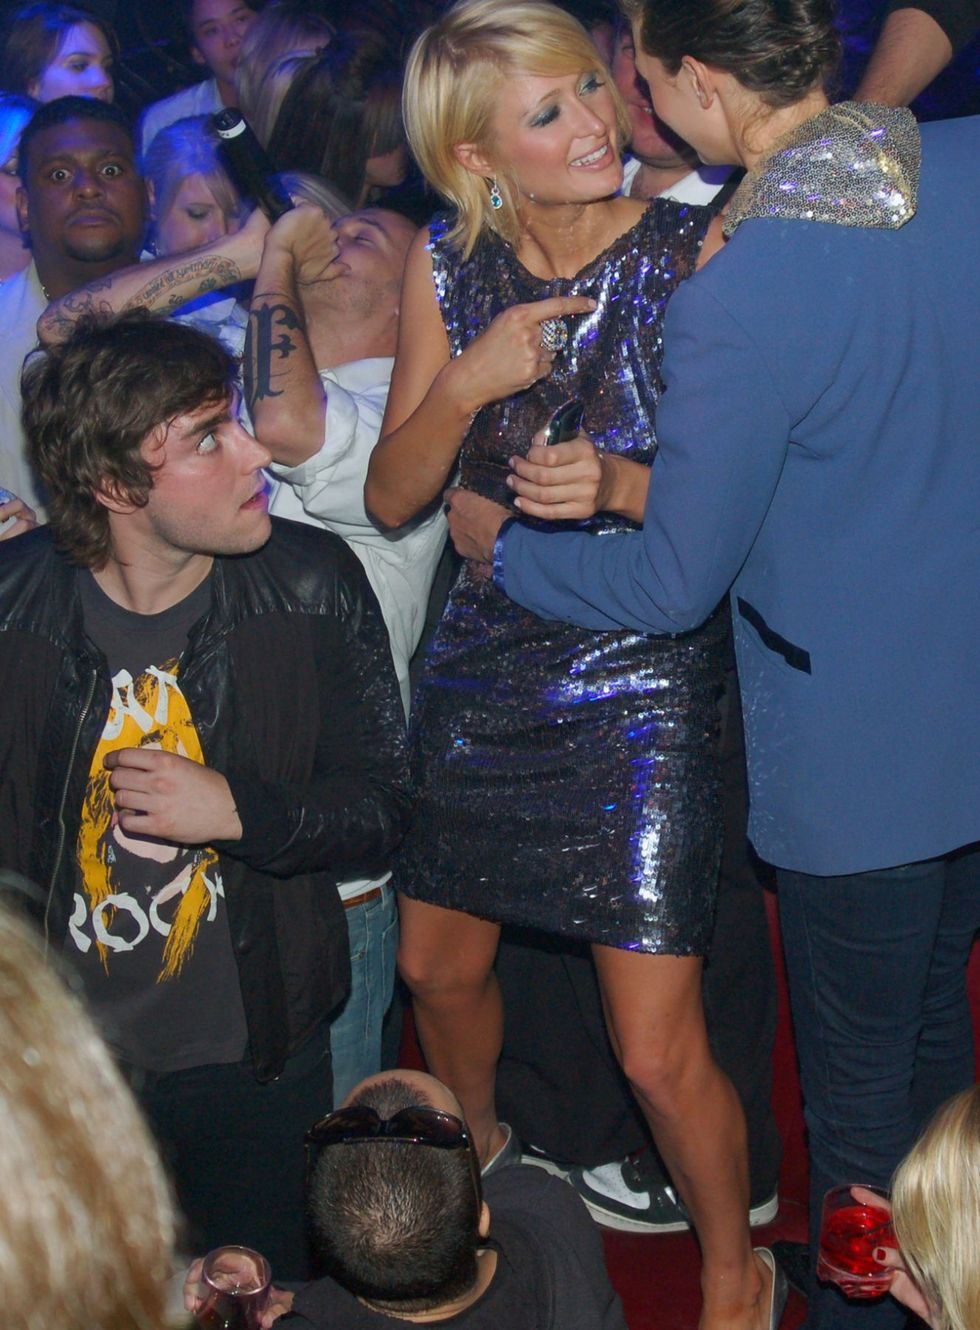 paris-hilton-at-pure-nightclub-in-las-vegas-01